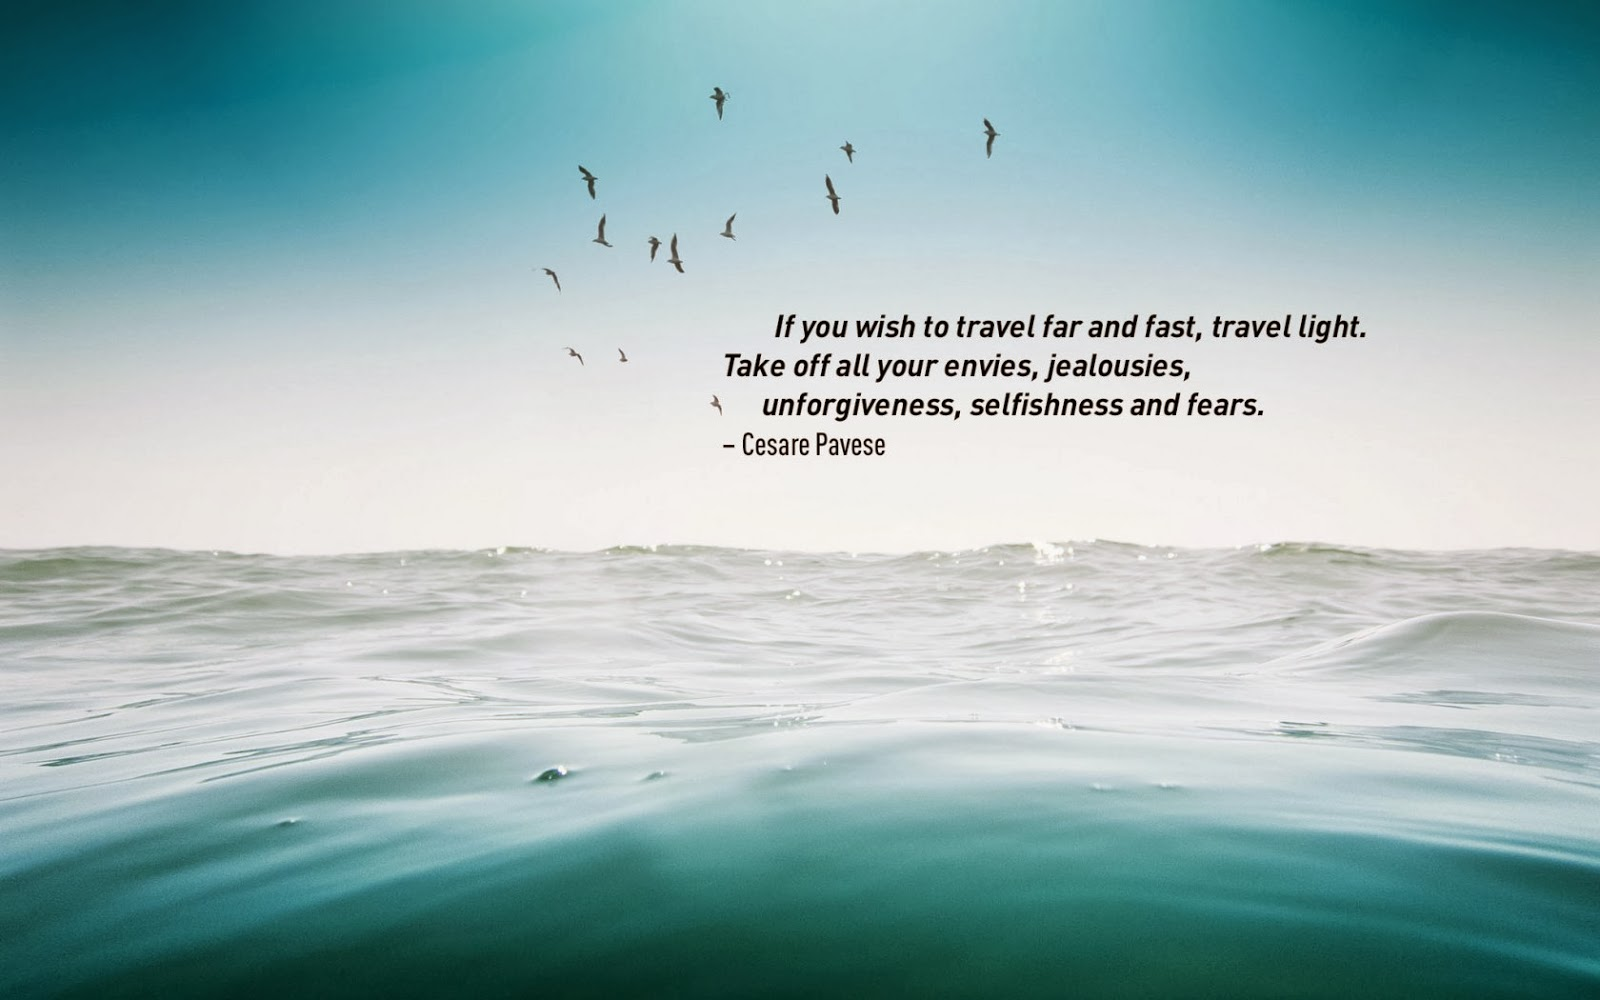 Cruise Vacation Quotes Quotesgram: Travel Quotes And Poems. QuotesGram